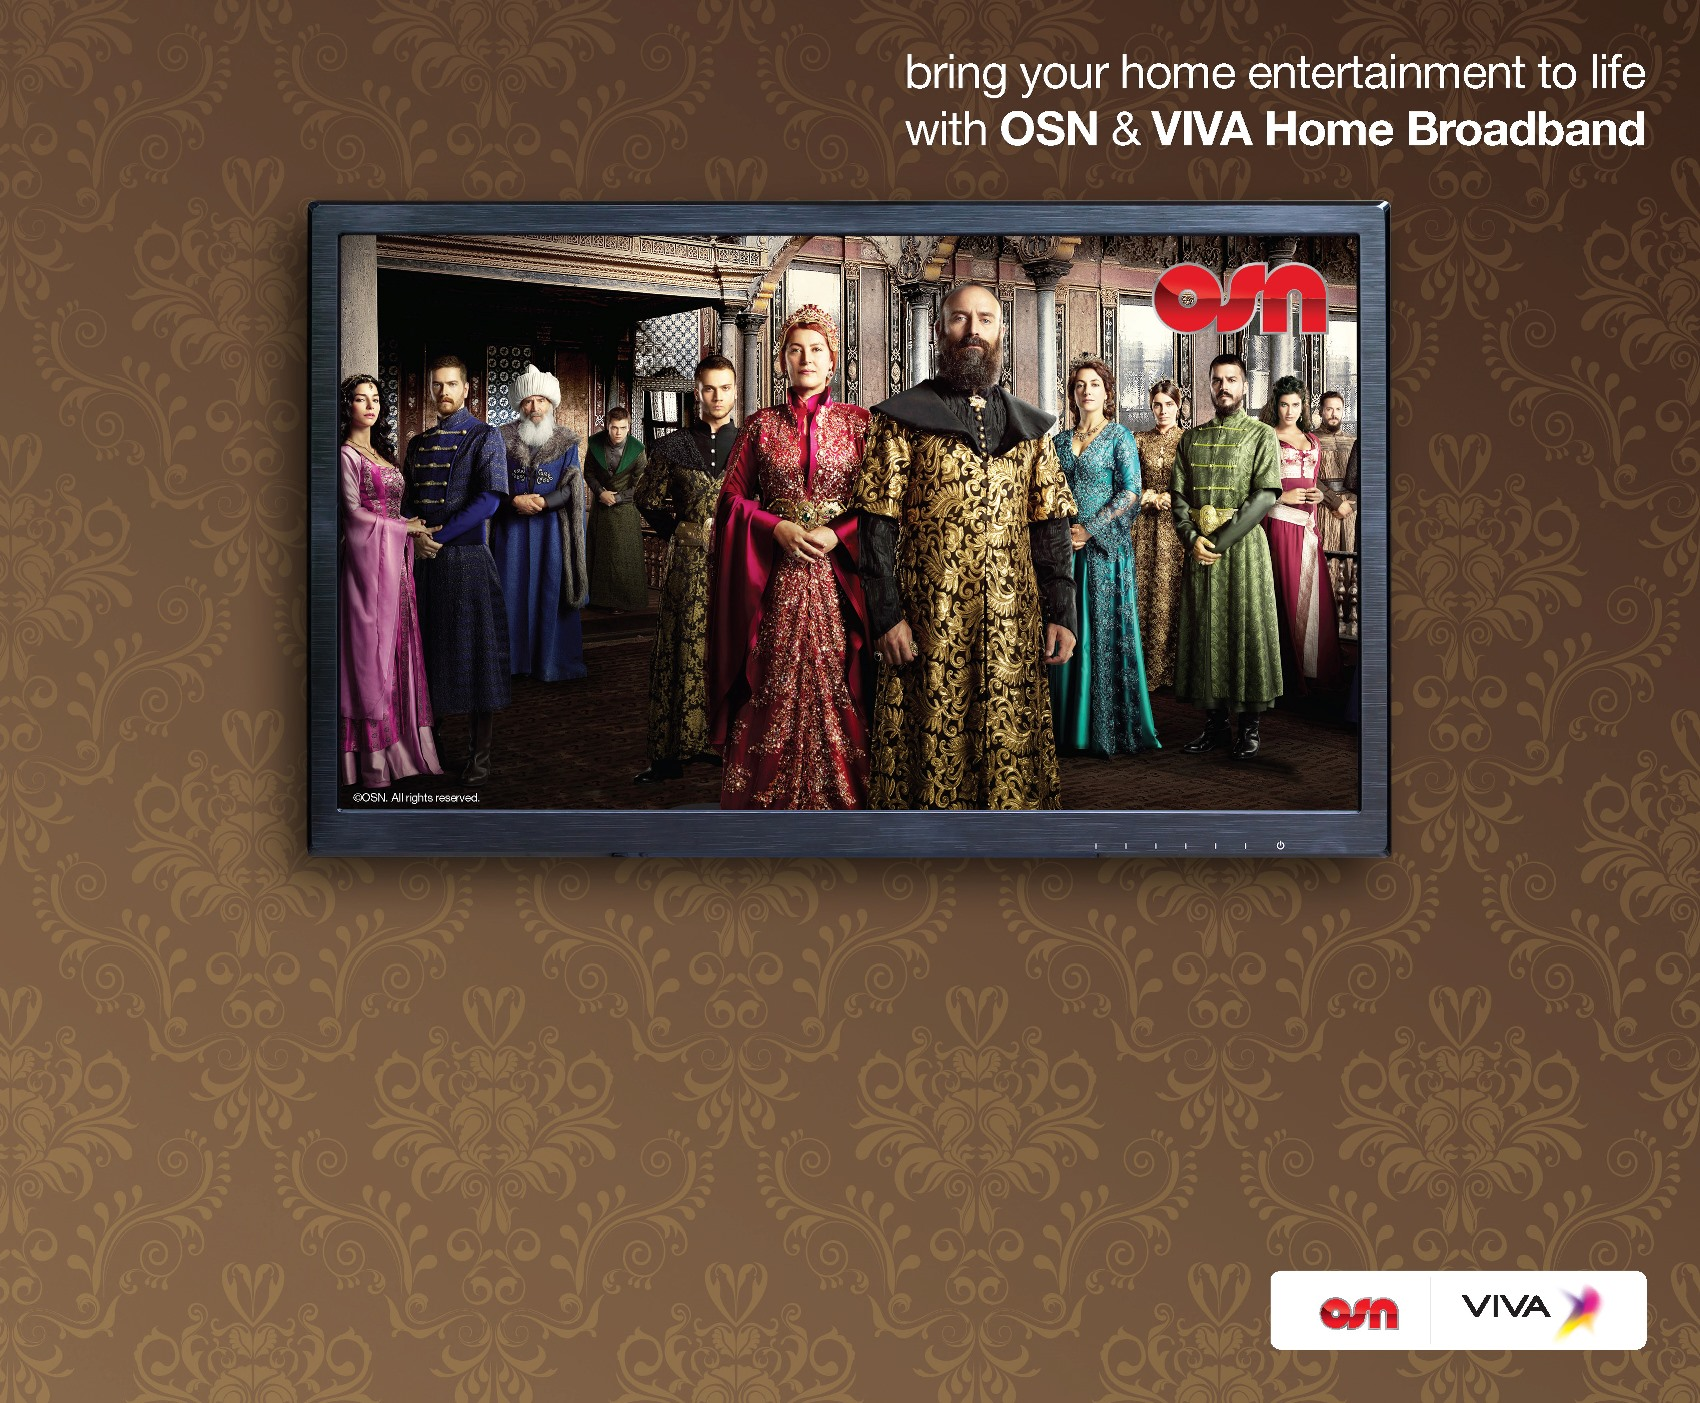 VIVA partners with OSN to offer enhanced home entertainment and